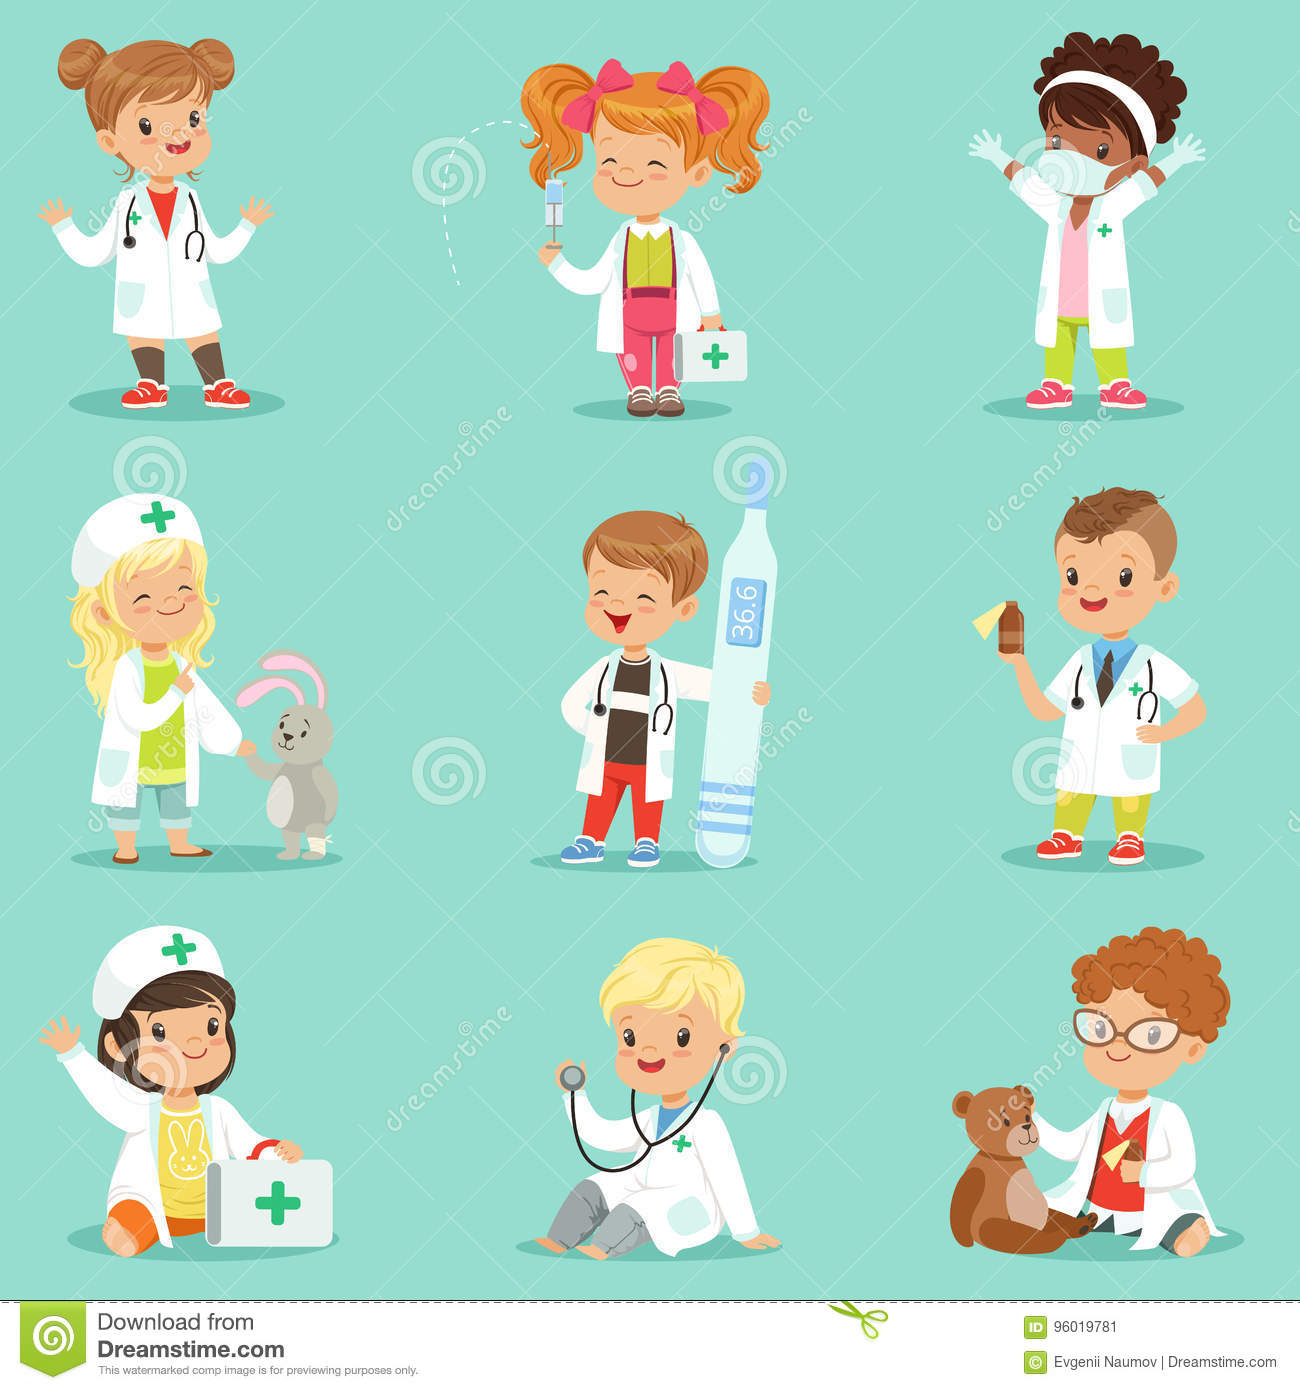 Adorable Little Girl Playing With Beach Toys During: Adorable Kids Playing Doctor Set. Smiling Little Boys And